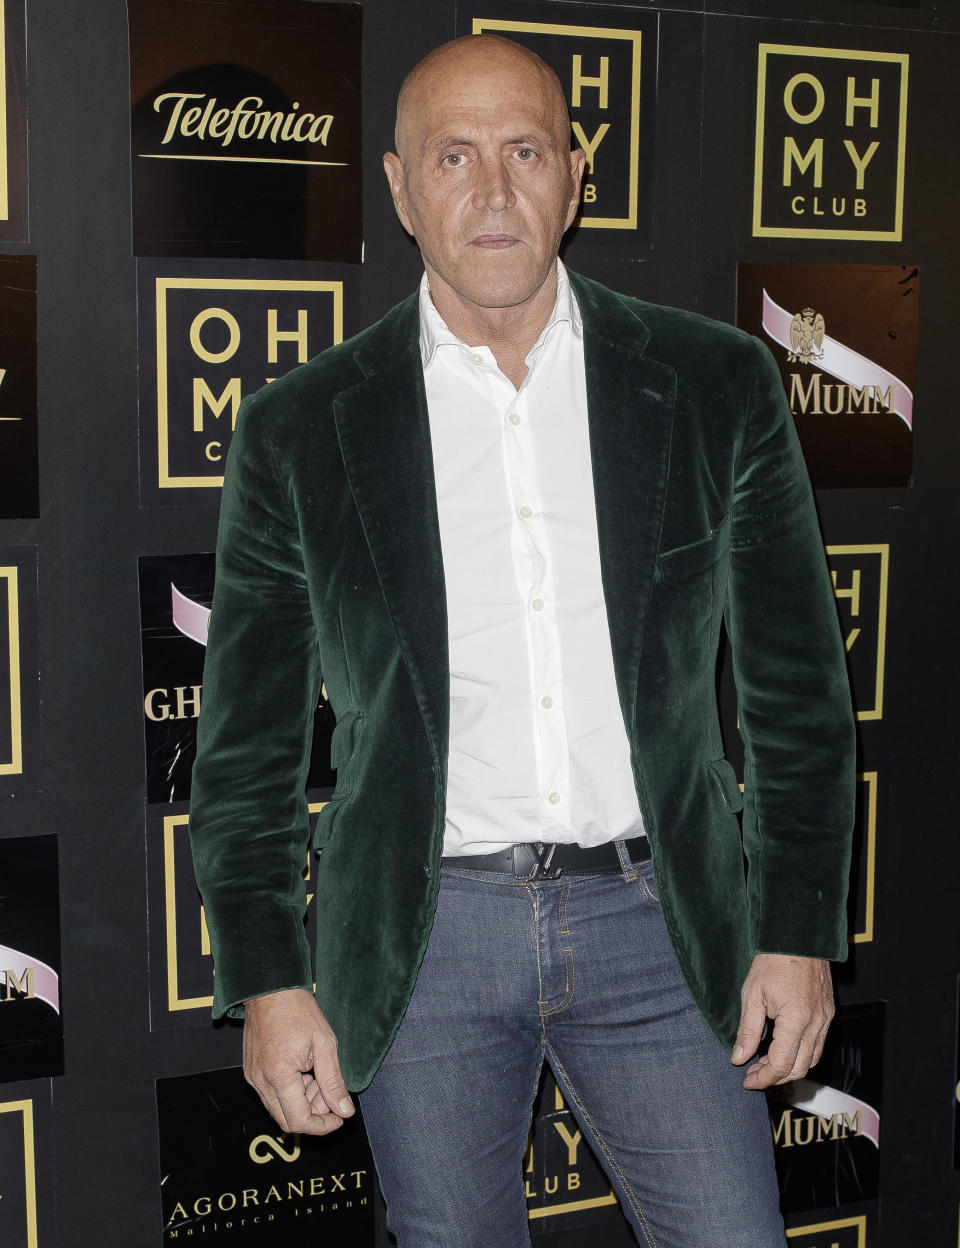 MADRID, SPAIN - JANUARY 23: Kiko Matamoros attends the 'Travel & Tourism Digital Awards' photocall at Oh My Club on January 23, 2019 in Madrid, Spain. (Photo by Eduardo Parra/Getty Images)